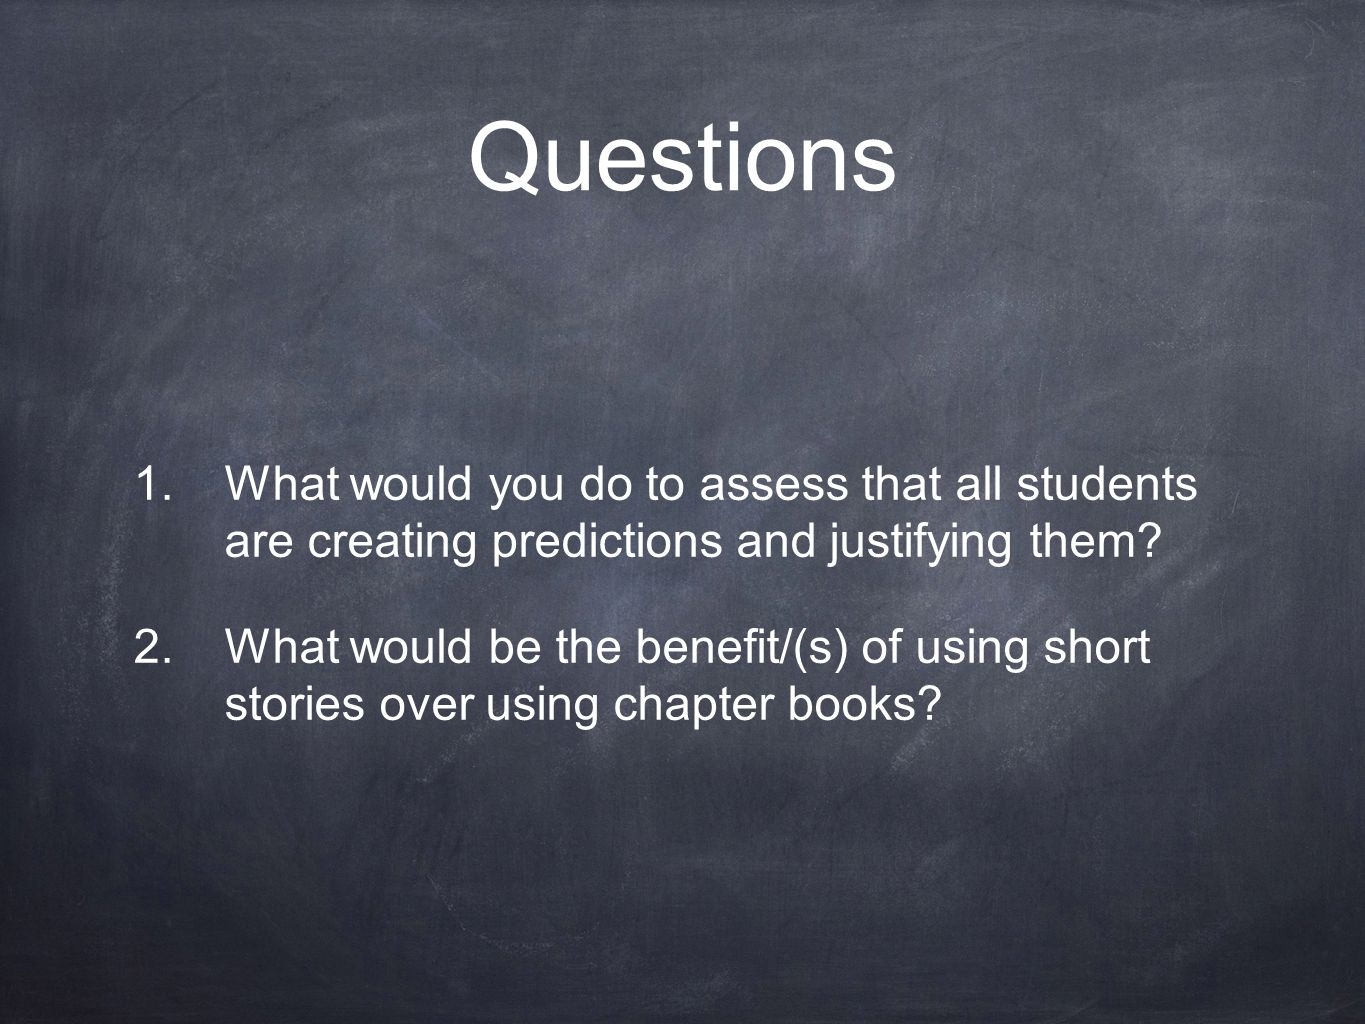 Questions 1.What would you do to assess that all students are creating predictions and justifying them? 2.What would be the benefit/(s) of using short